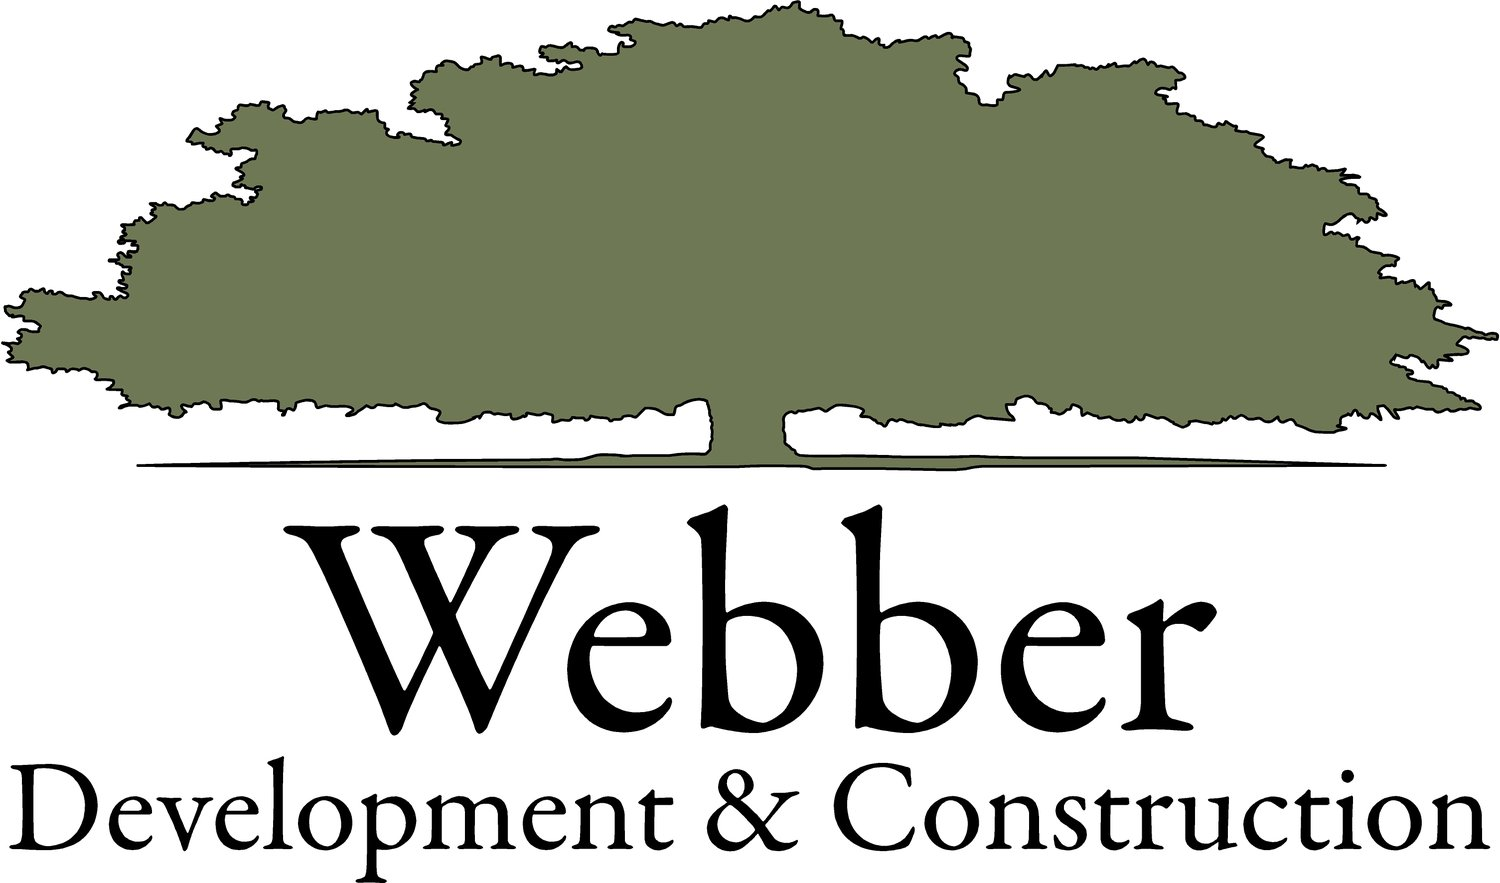 Webber Development & Construction